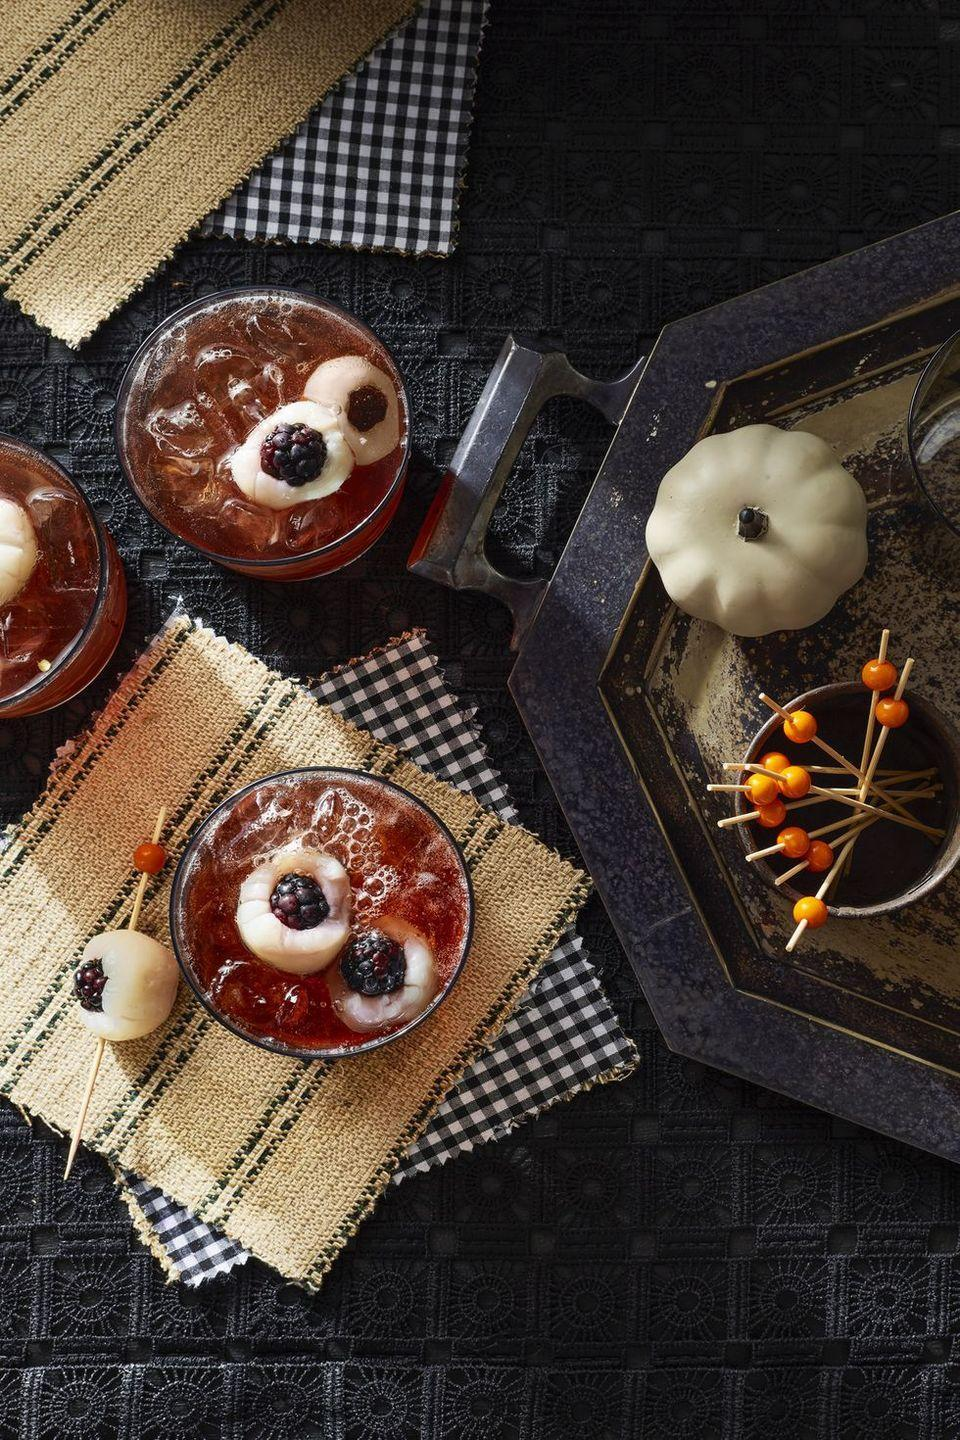 "<p>I spy an eyeball in my drink! Have no fear, they're actually lychees stuffed with blueberries.</p><p><em><a href=""https://www.countryliving.com/food-drinks/g2640/halloween-cocktails/?slide=2"" rel=""nofollow noopener"" target=""_blank"" data-ylk=""slk:Get the recipe from Country Living »"" class=""link rapid-noclick-resp""> Get the recipe from Country Living »</a></em></p>"